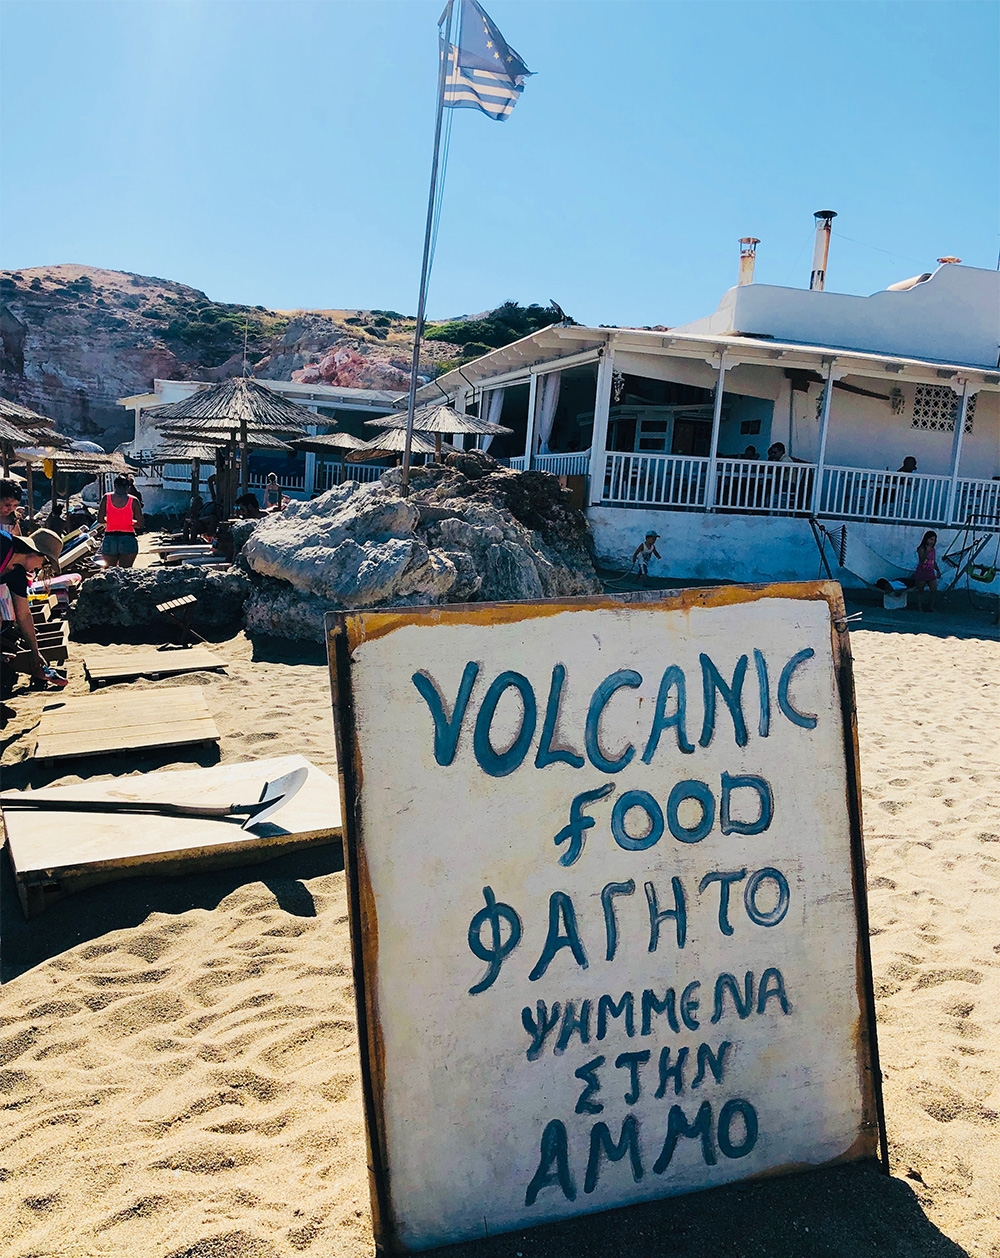 "An image of Sirrocco taverna at Paliochori Beach. A small white house with a wrap around verandah and Greek flag raised. A sign in the sand reads, ""Volcanic Food"", as well as four lines of Greek writing."